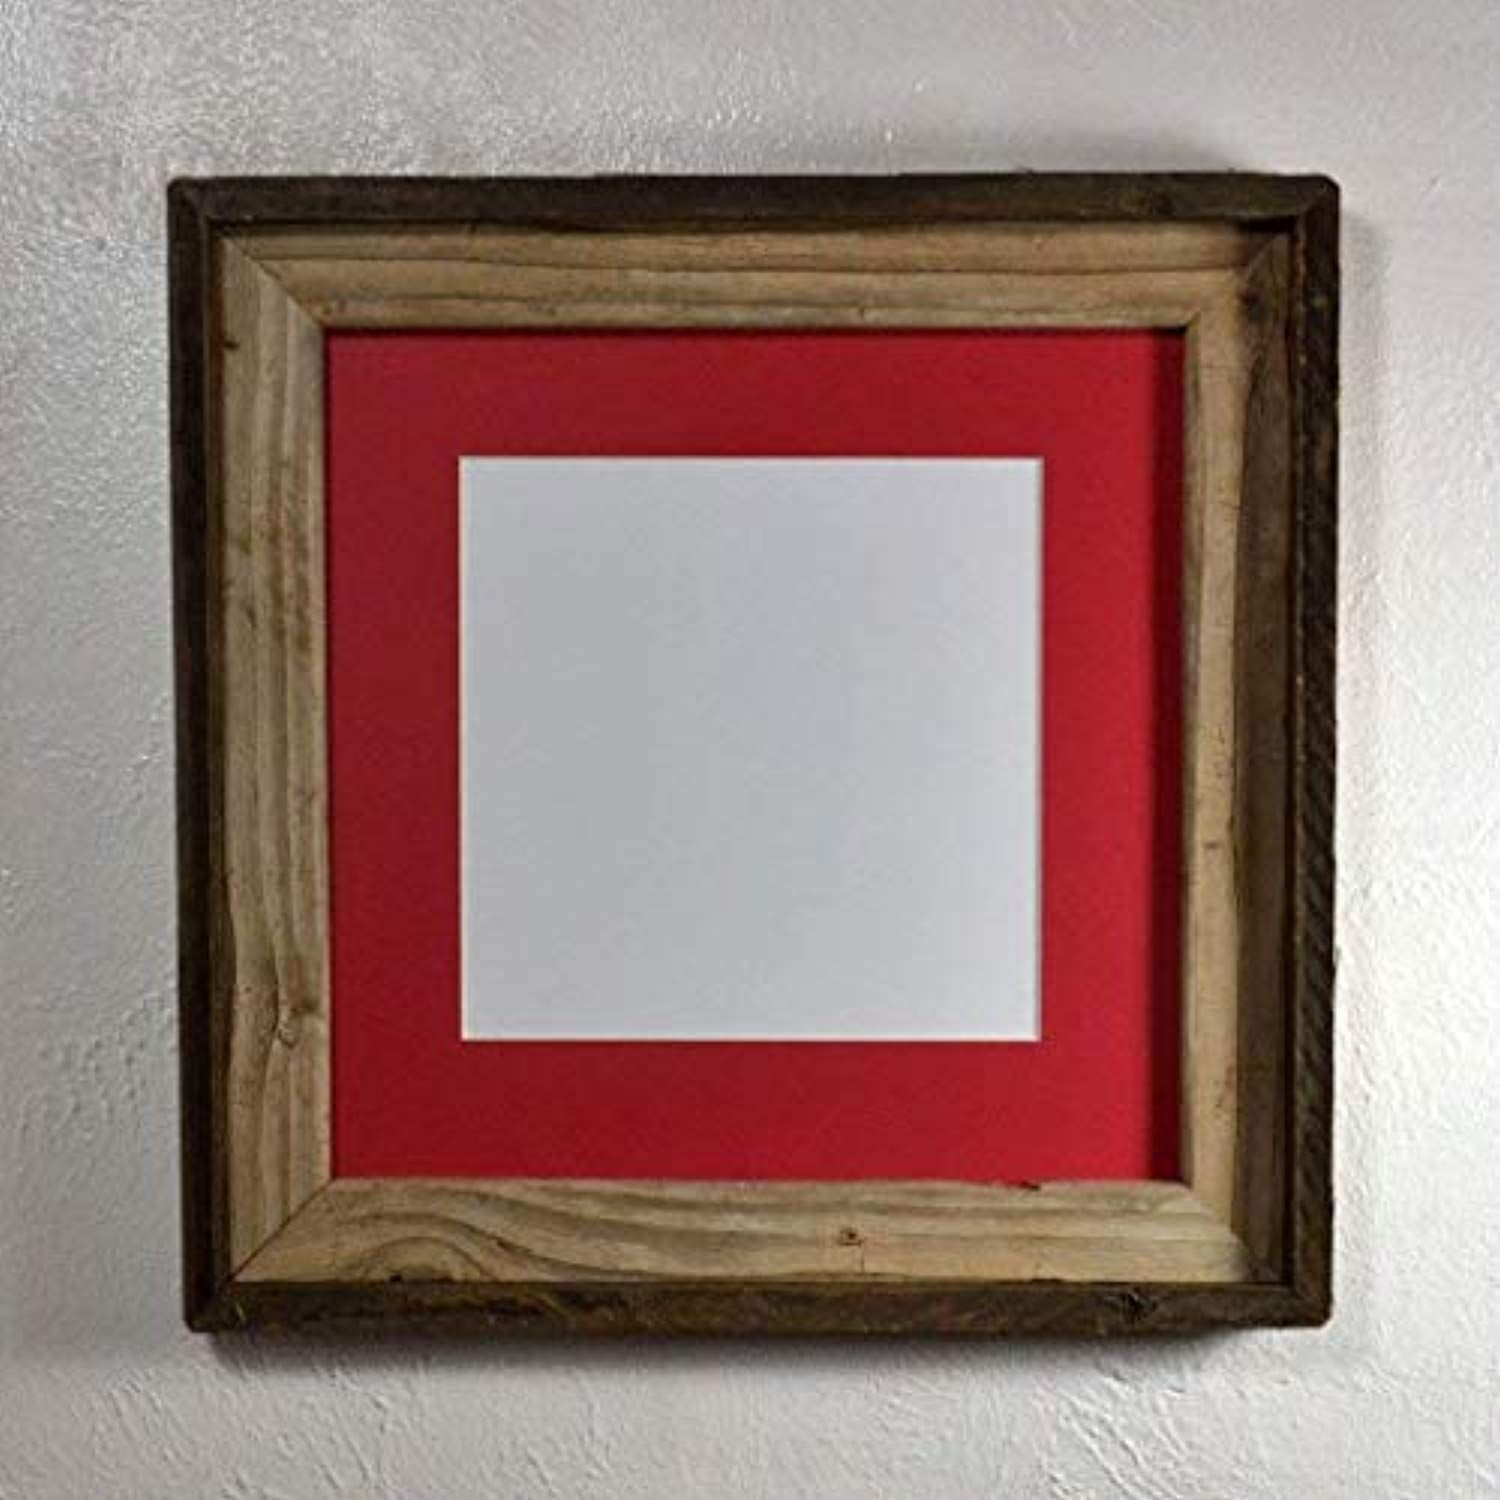 Picture Frame 8x8 Red Mat Reclaimed Wood Complete With Glass Brown And Gray 12x12 Without Mat You Can Get More Details By Clicking O Wood Picture Frames Picture On Wood